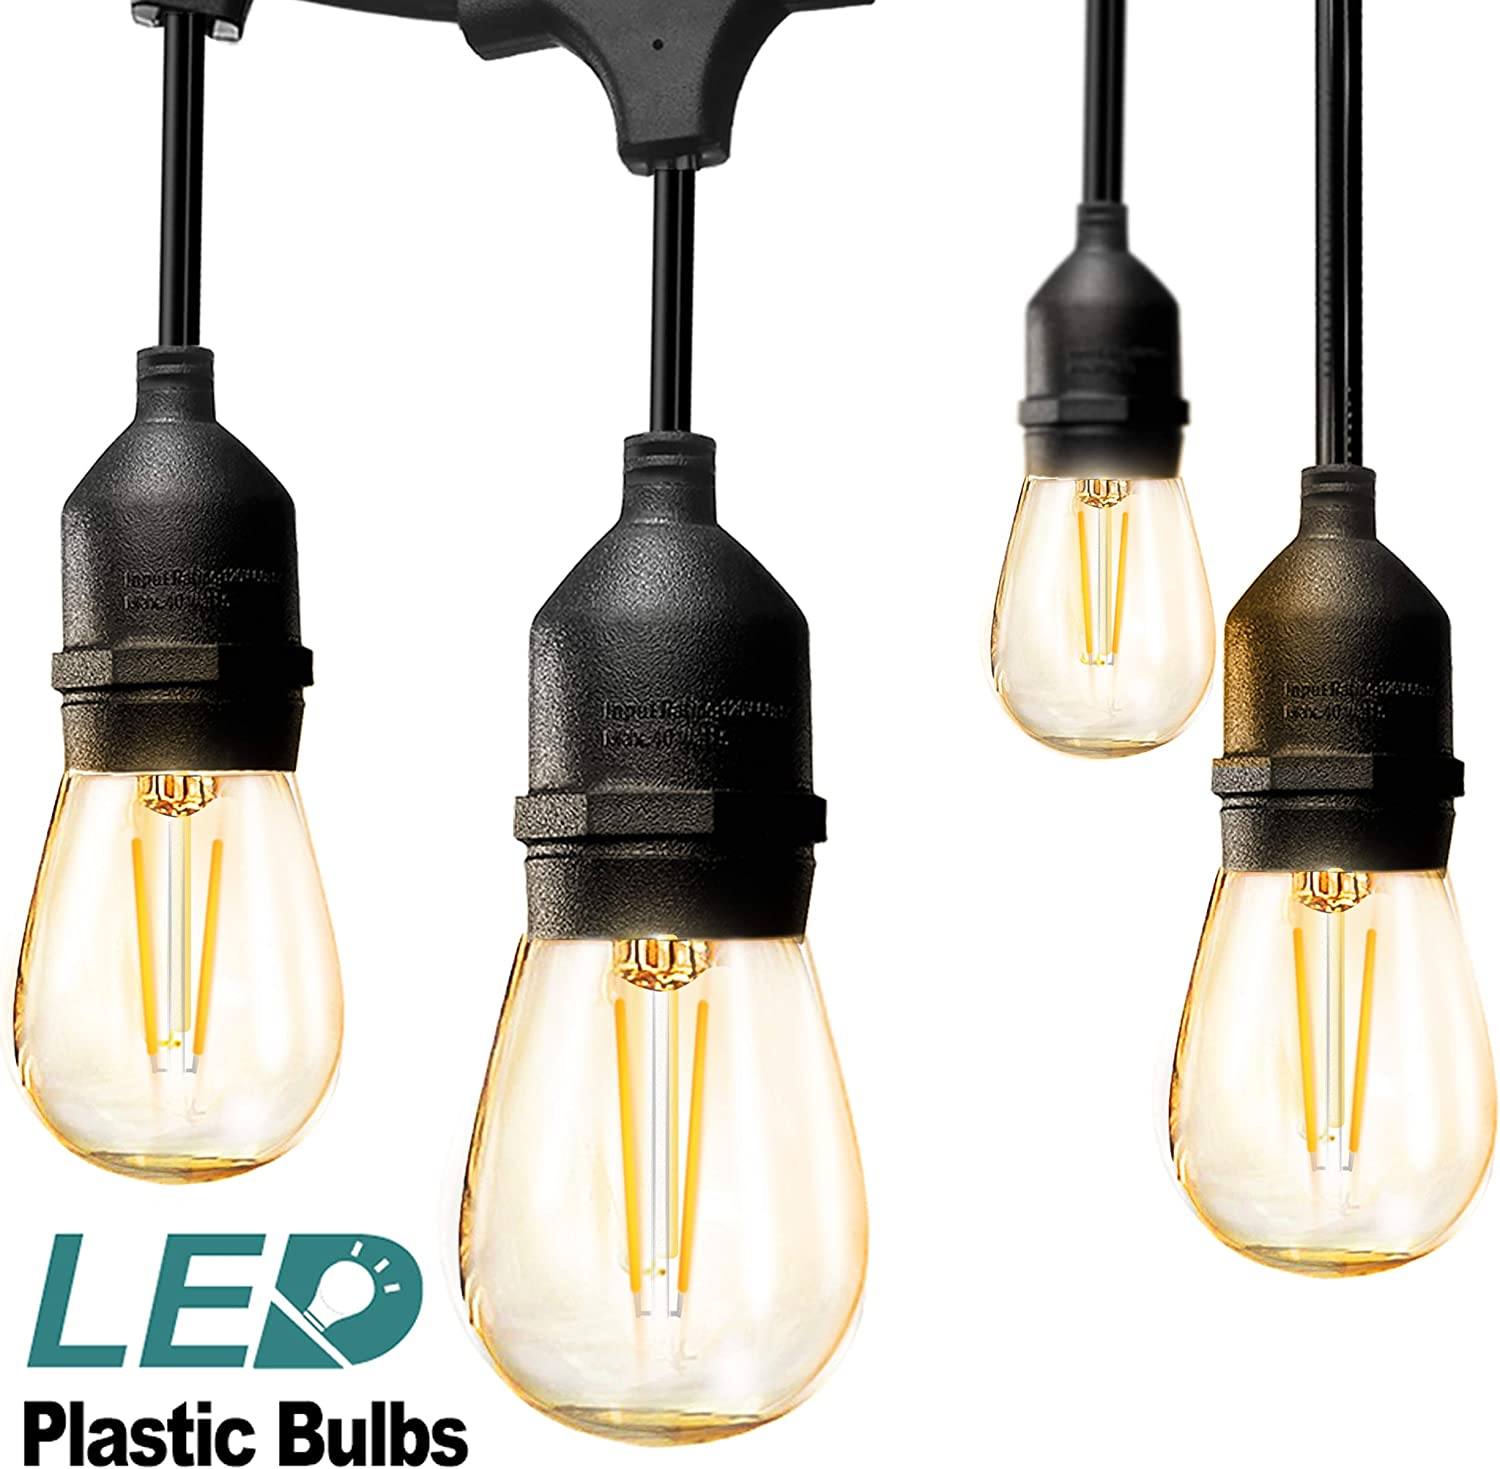 addlon LED Outdoor String Lights 48FT with 2W Dimmable Edison Vintage Plastic Bulbs and Commercial Grade Weatherproof Strand - UL Listed Heavy-Duty Decorative LED Café Patio Light , Porch Market Light: Home Improvement